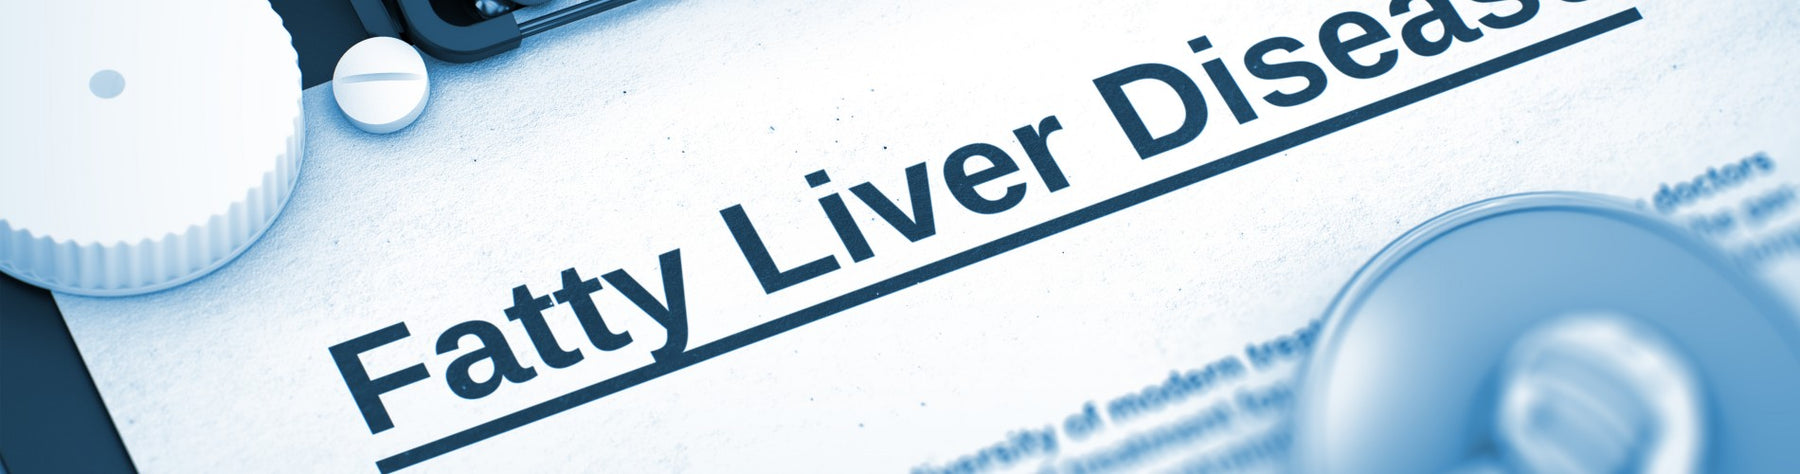 Fatty Liver Diet - Combating Non-Alcohol Related Fatty Liver Disease